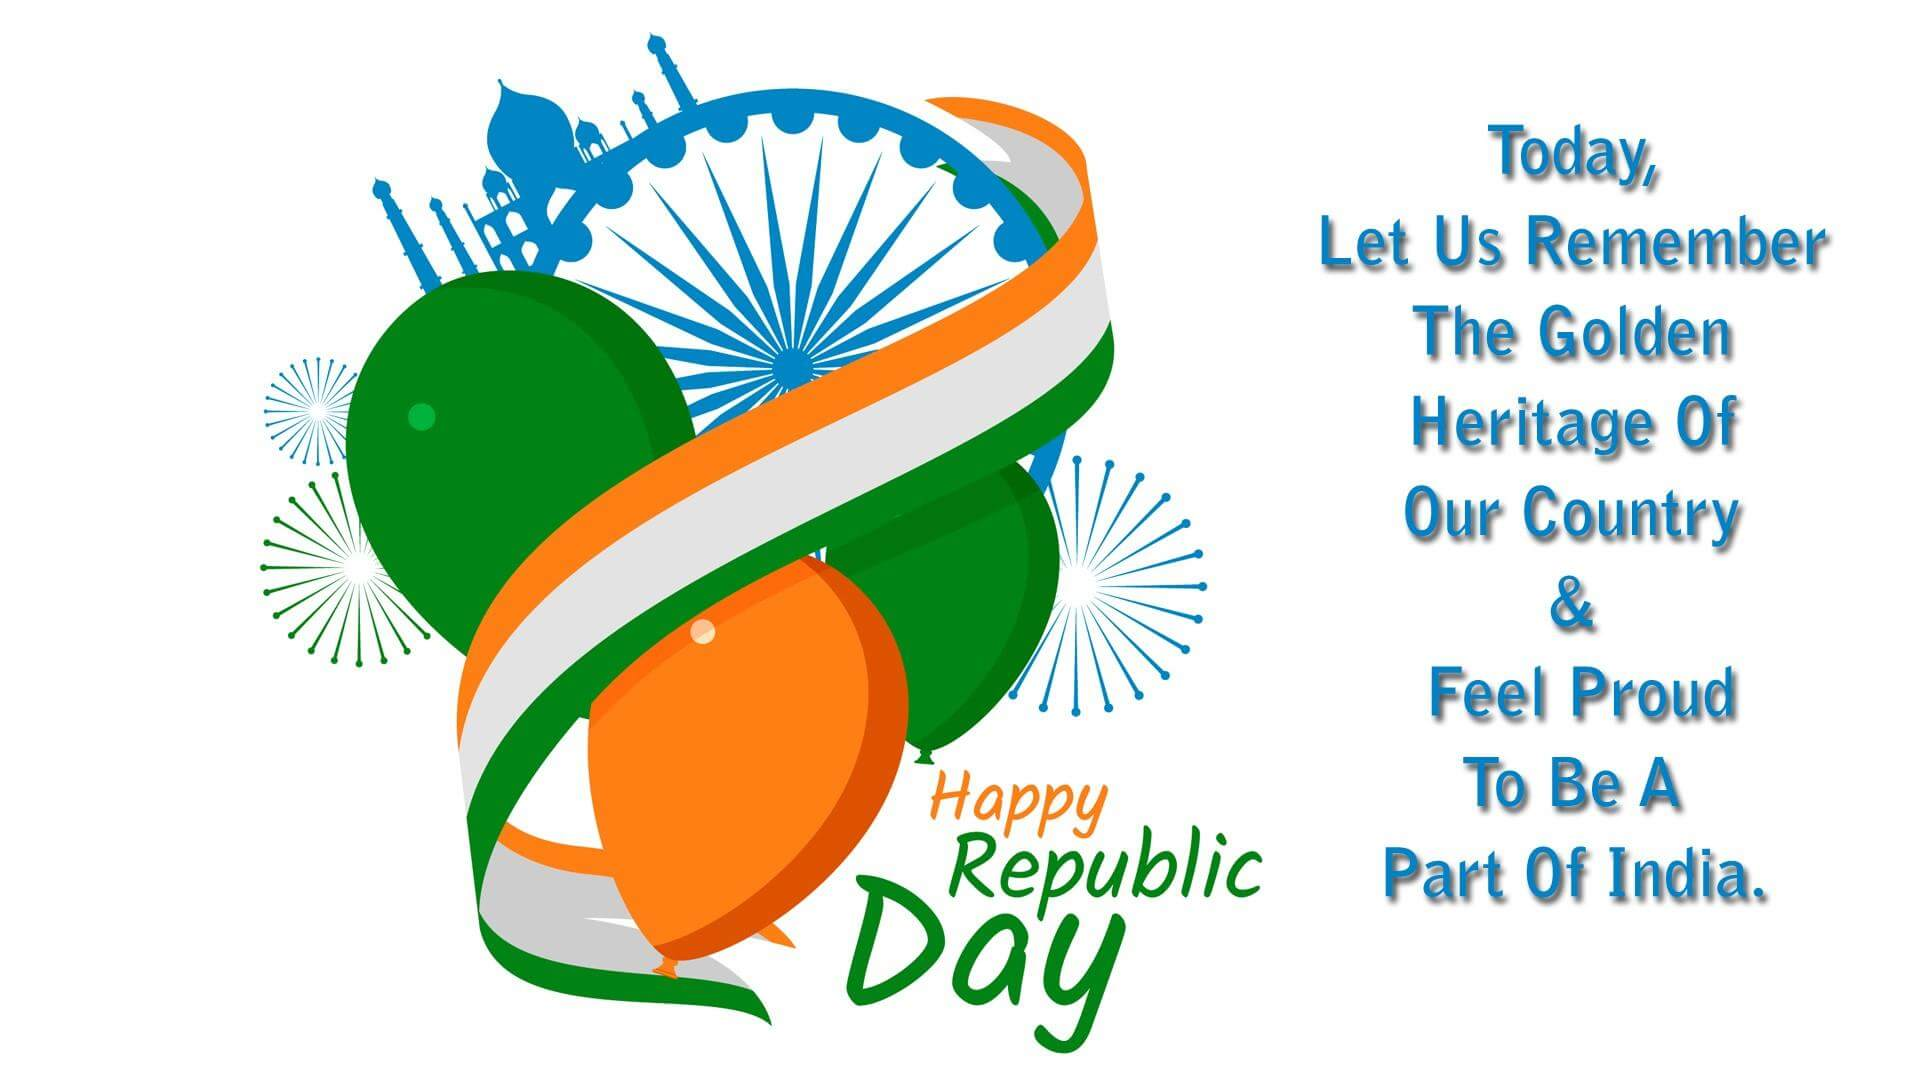 Republic Day Images Download